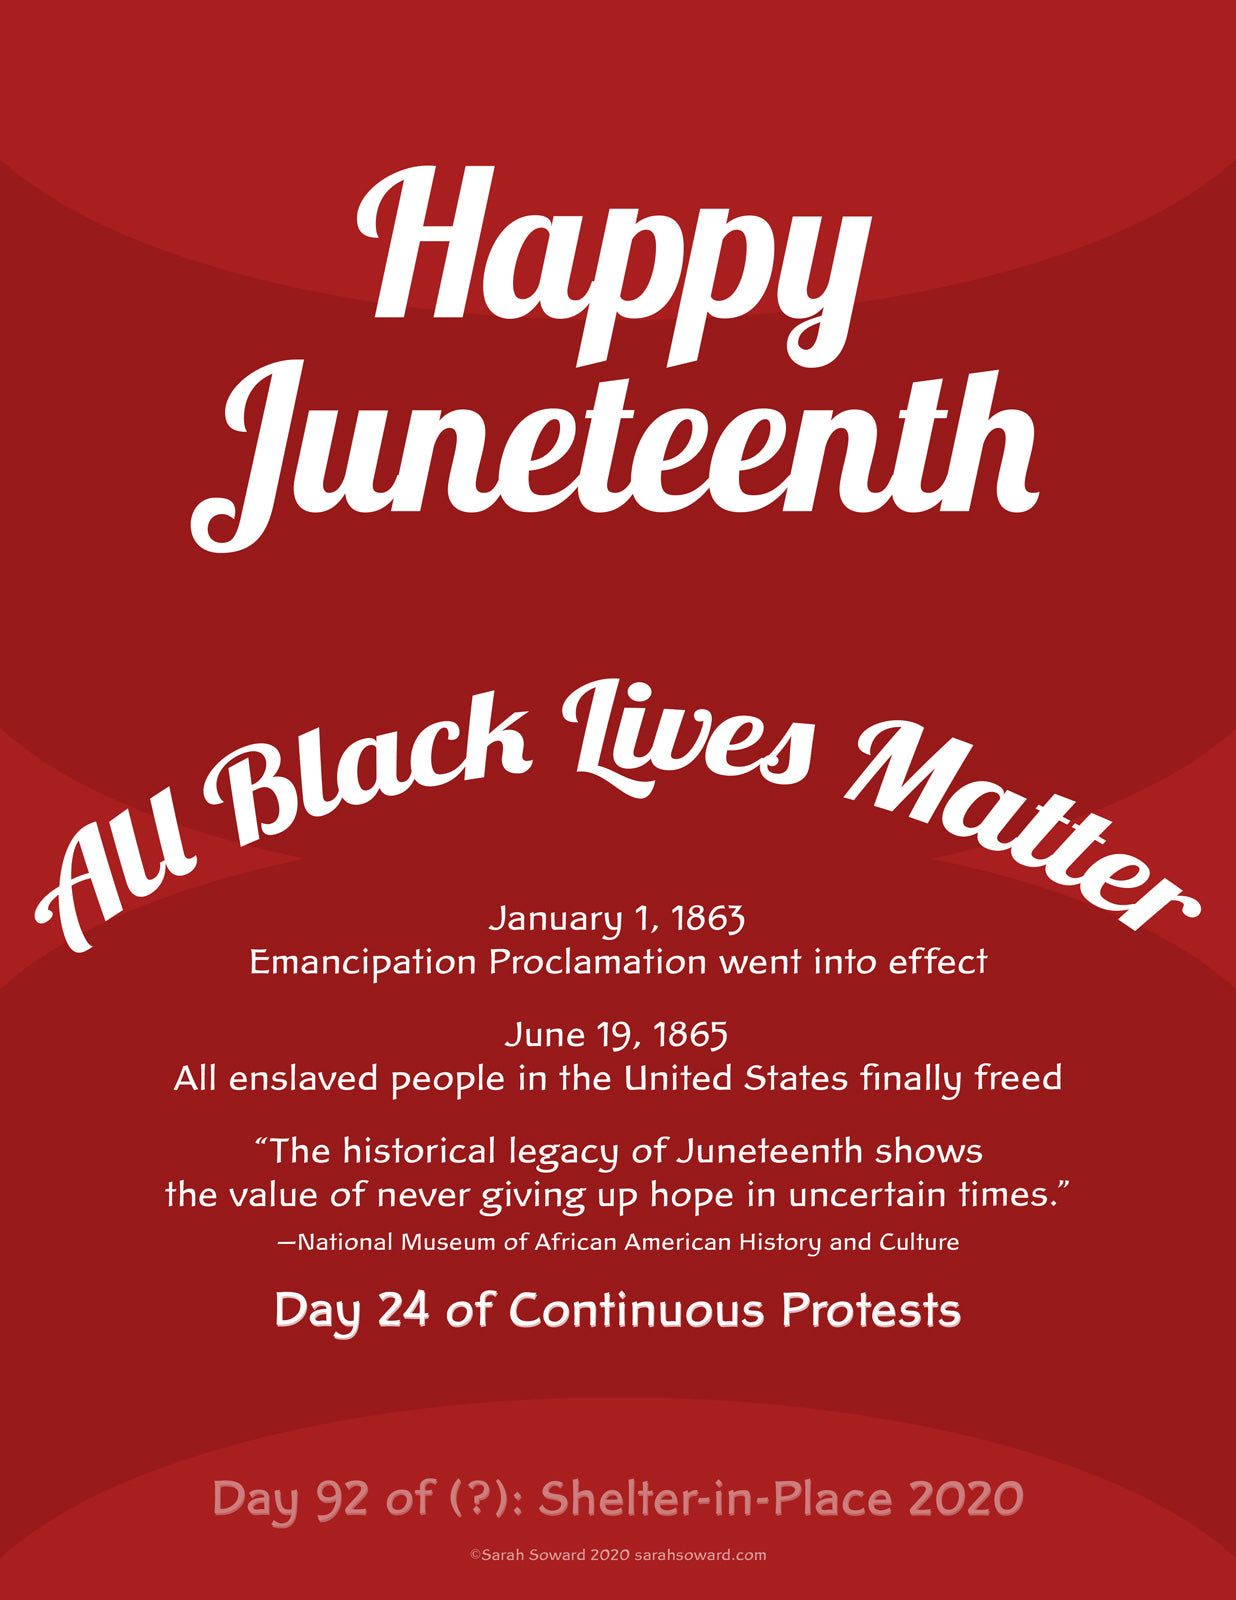 Text based image today. White text on a red background. The text on the image reads  Happy Juneteenth All Black Lives Matter January 1, 1863